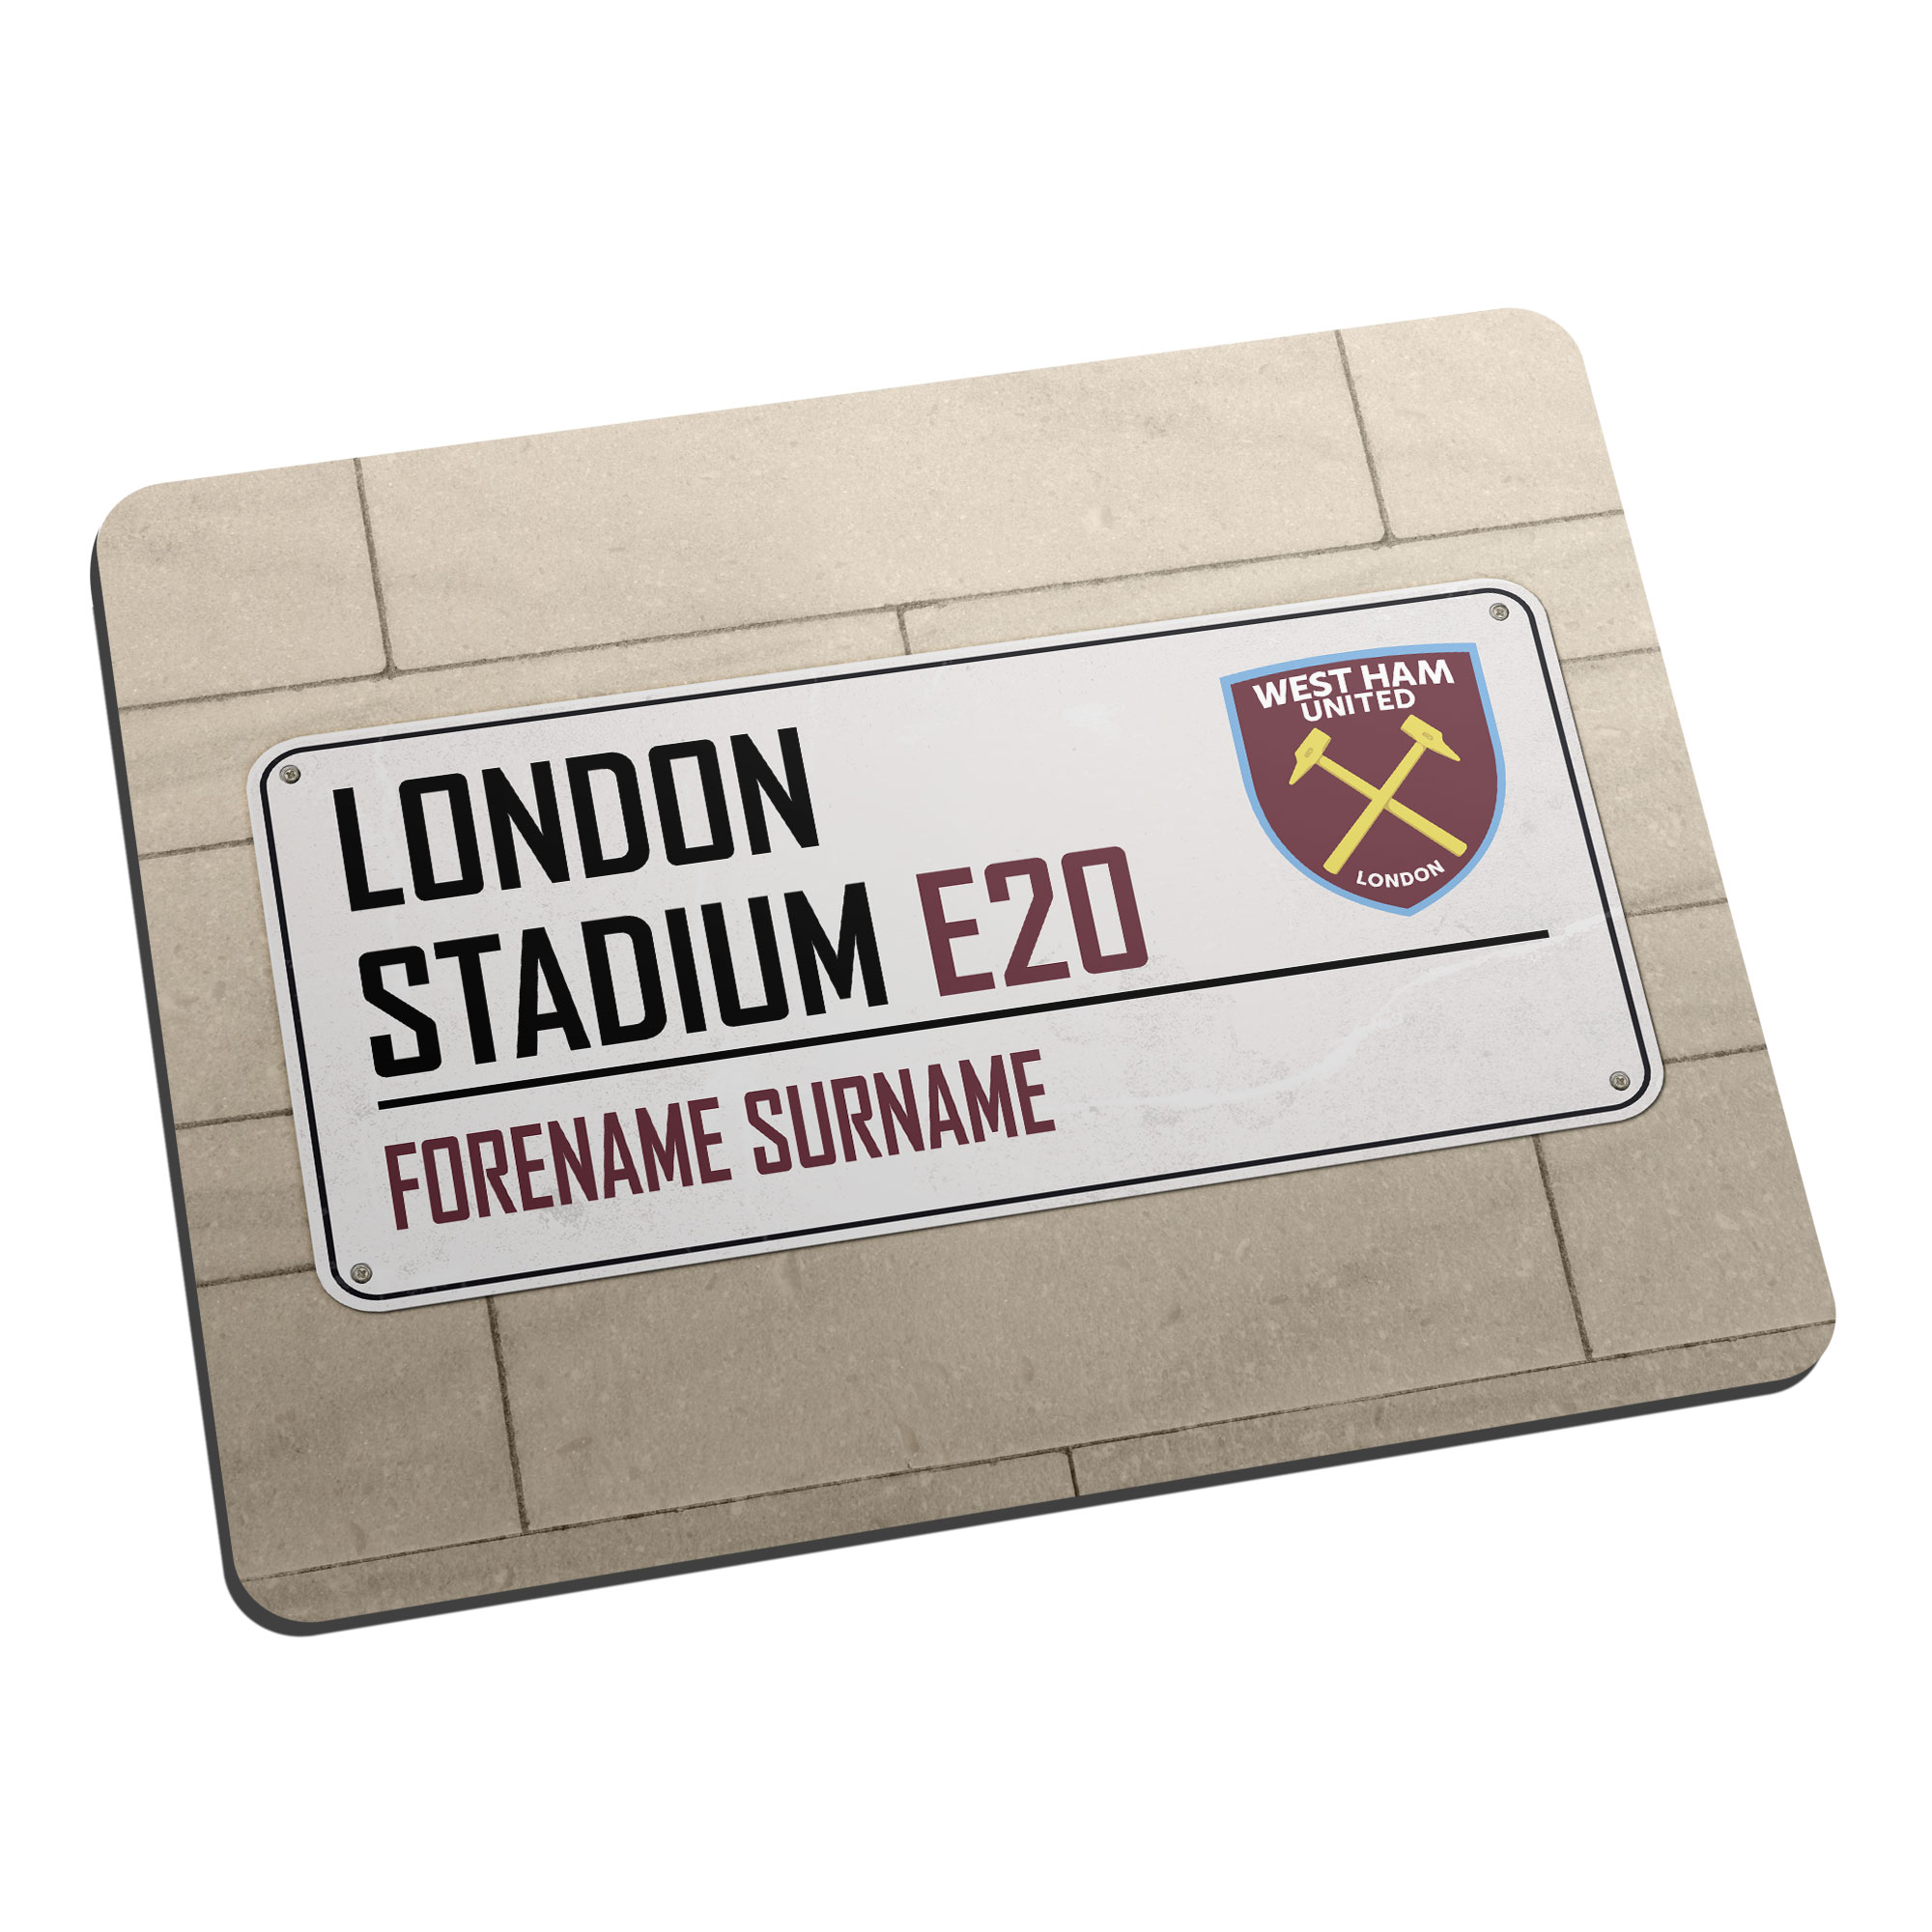 West Ham United FC Street Sign Mouse Mat